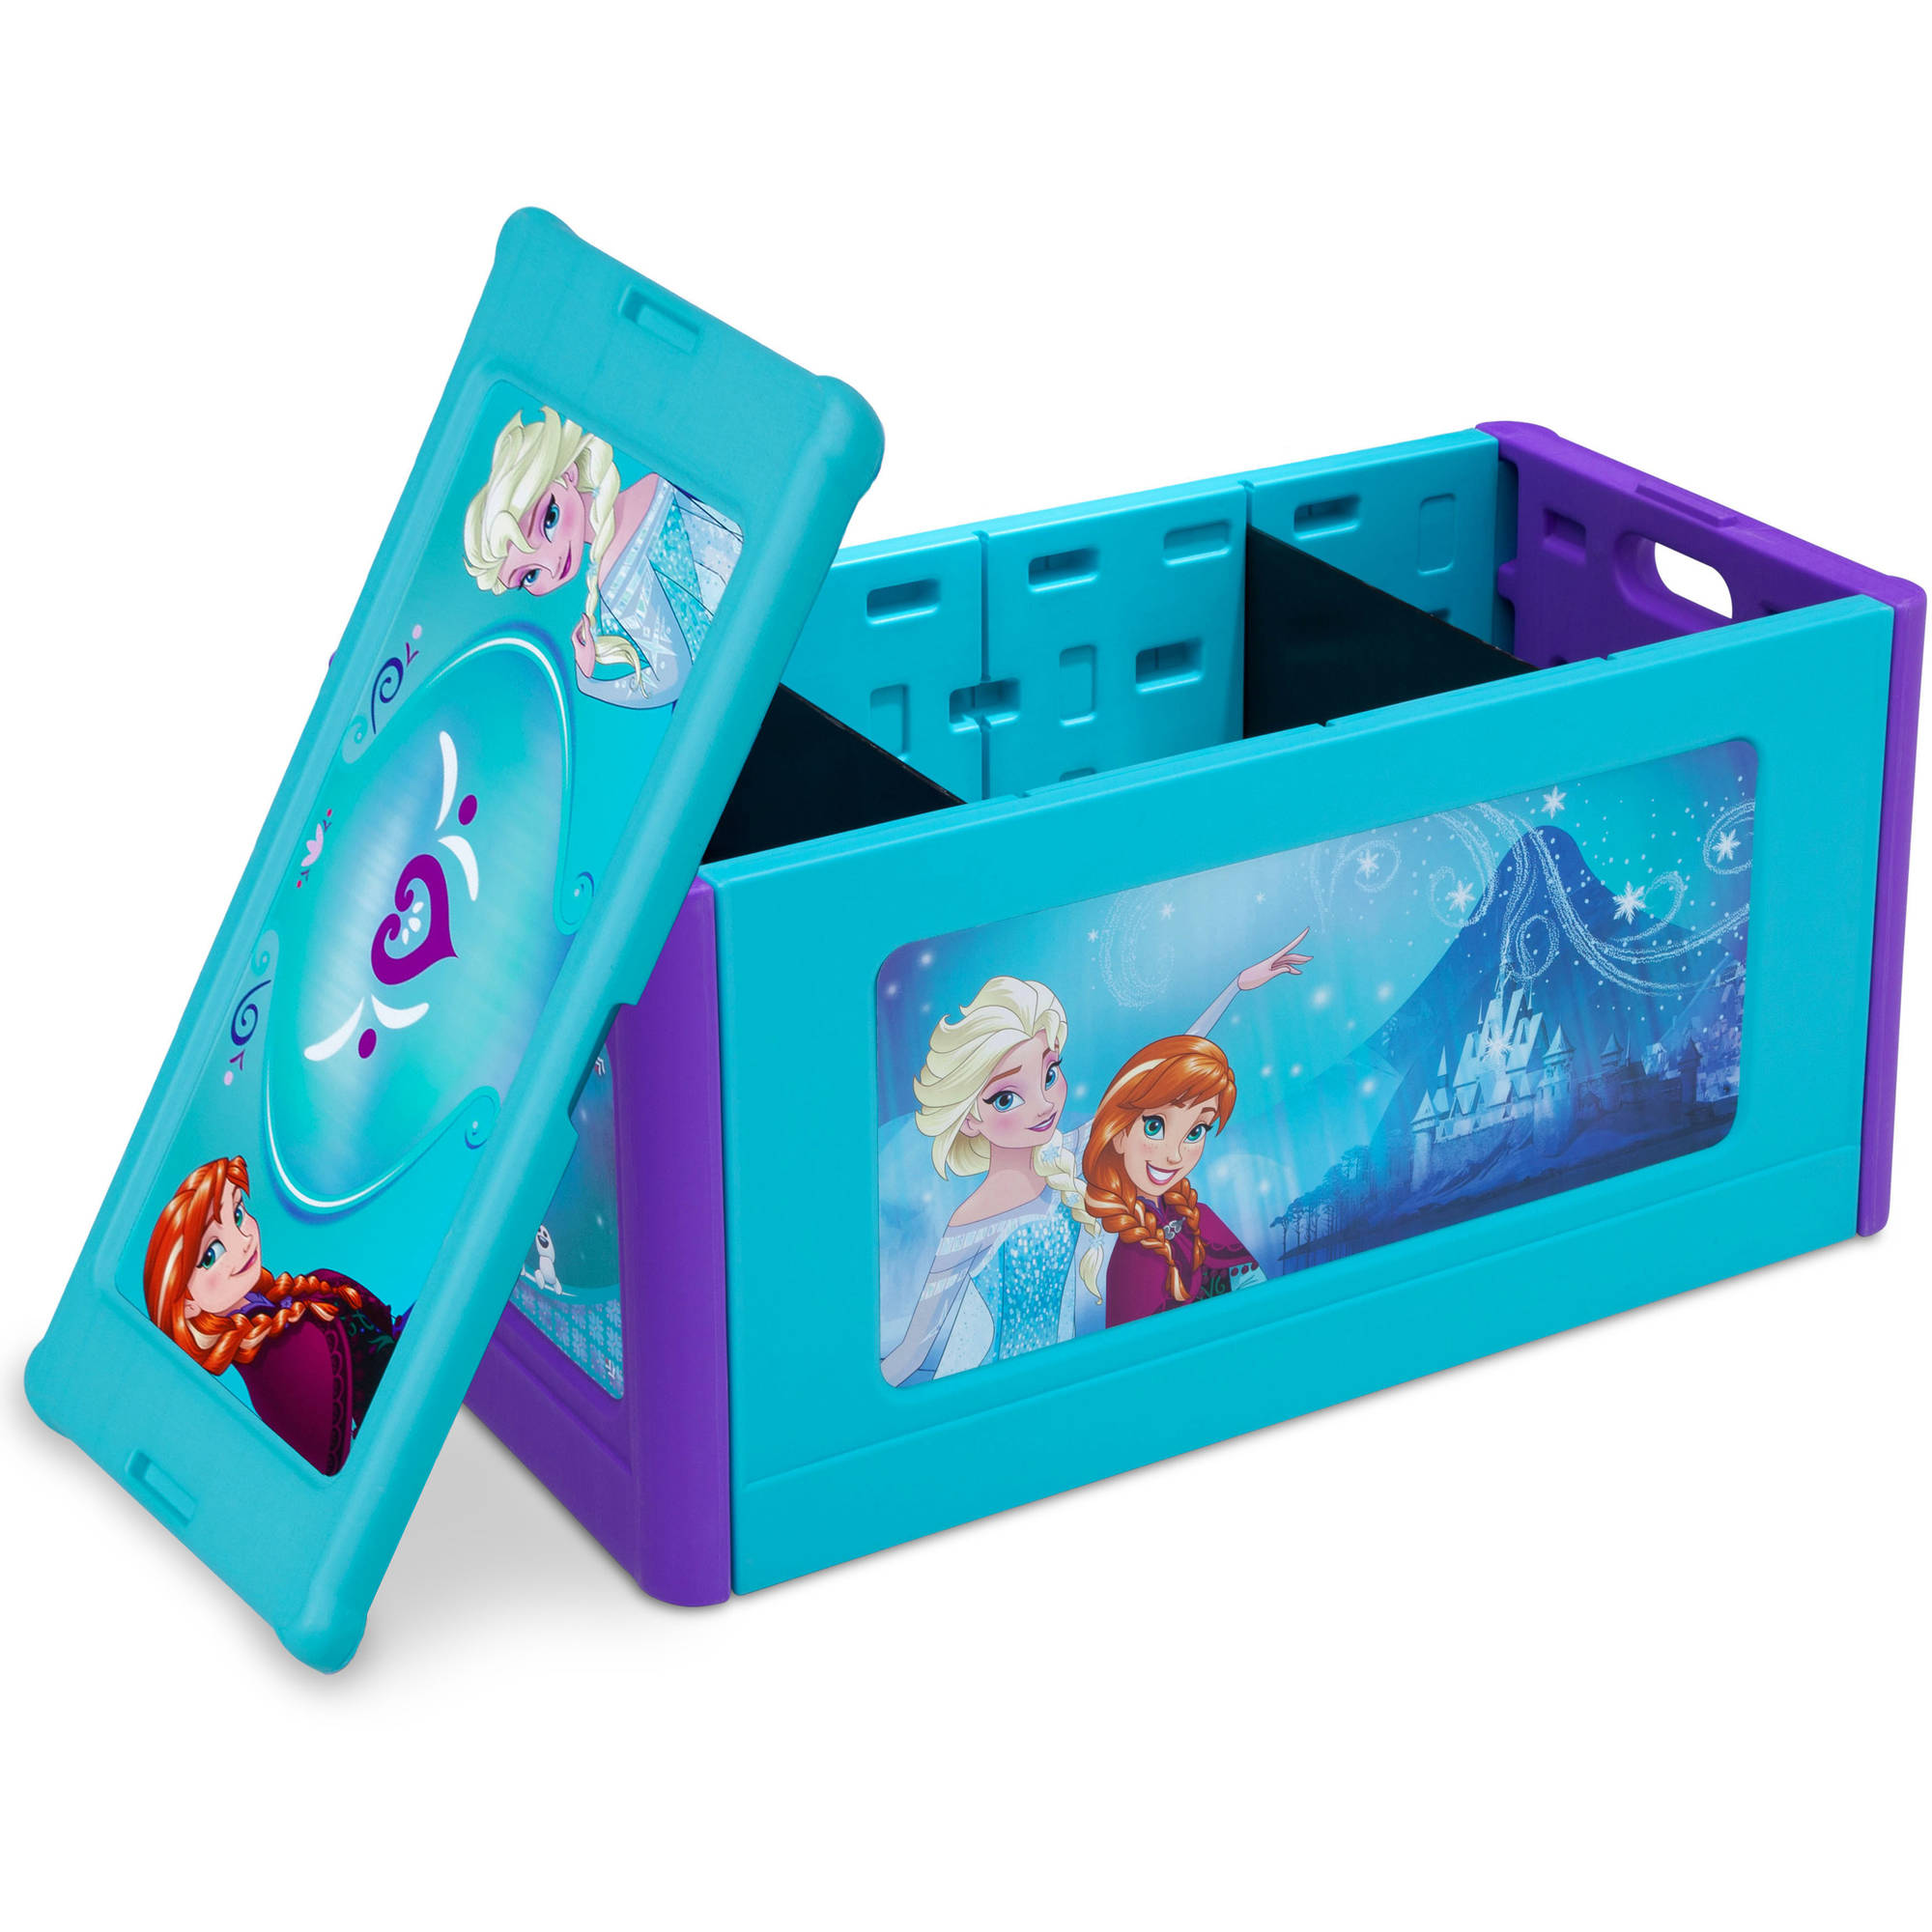 Disney Frozen Store And Organize Plastic Toy Box By Delta Children